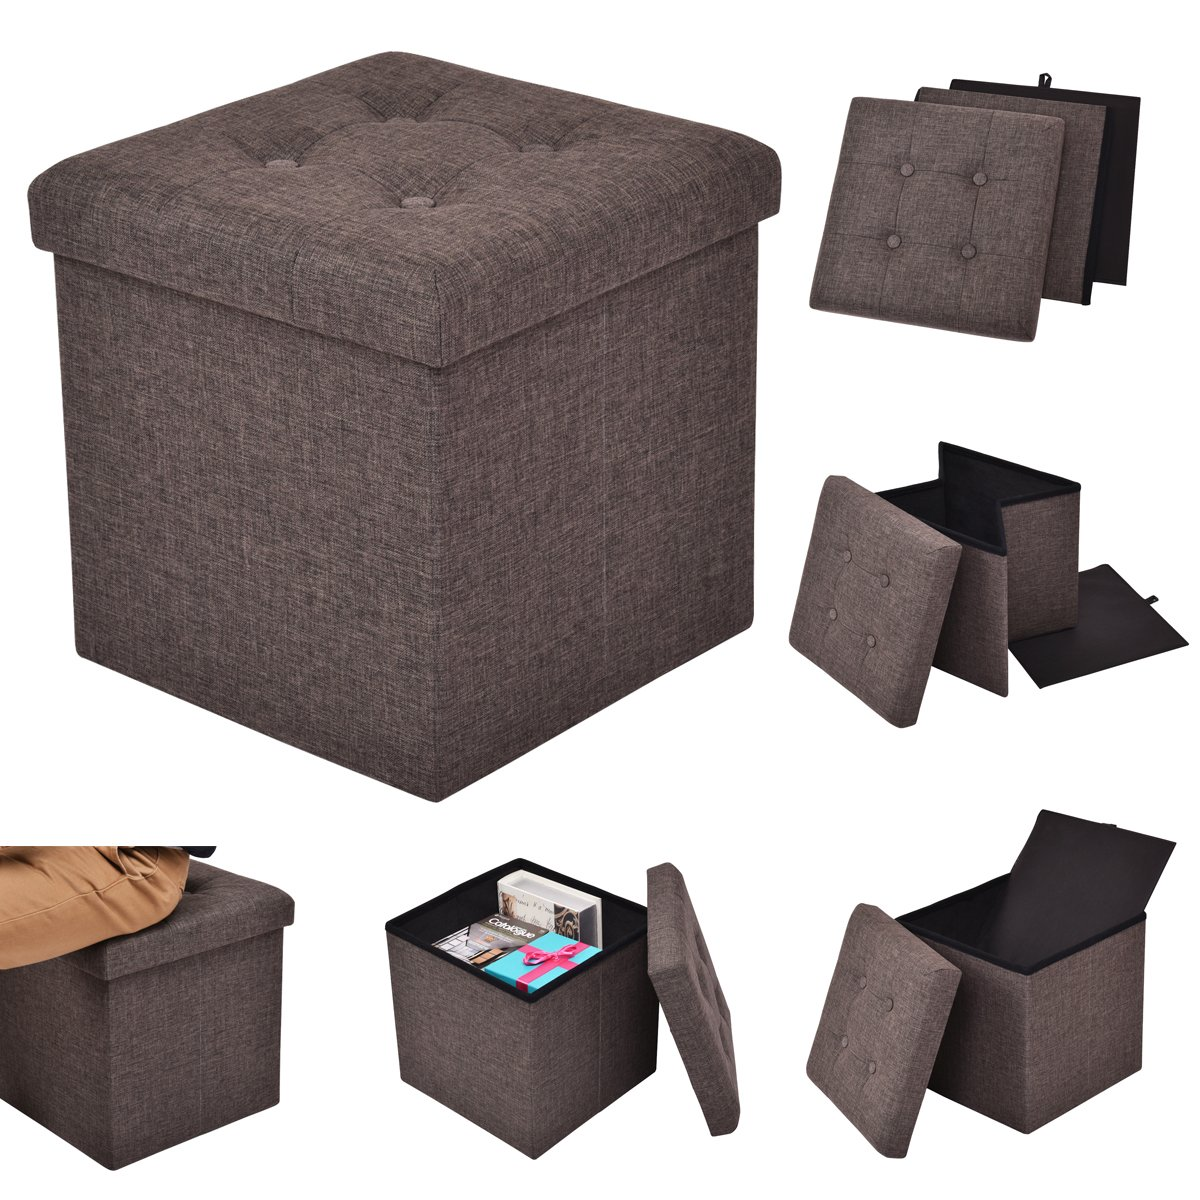 CASART Ottoman Single Seater - Single Seat Bench, Foldable Stool Box, Folding Storage Pouffe, Footstool with Fabric Materials and Removable Lid for Space-saving (Grey)